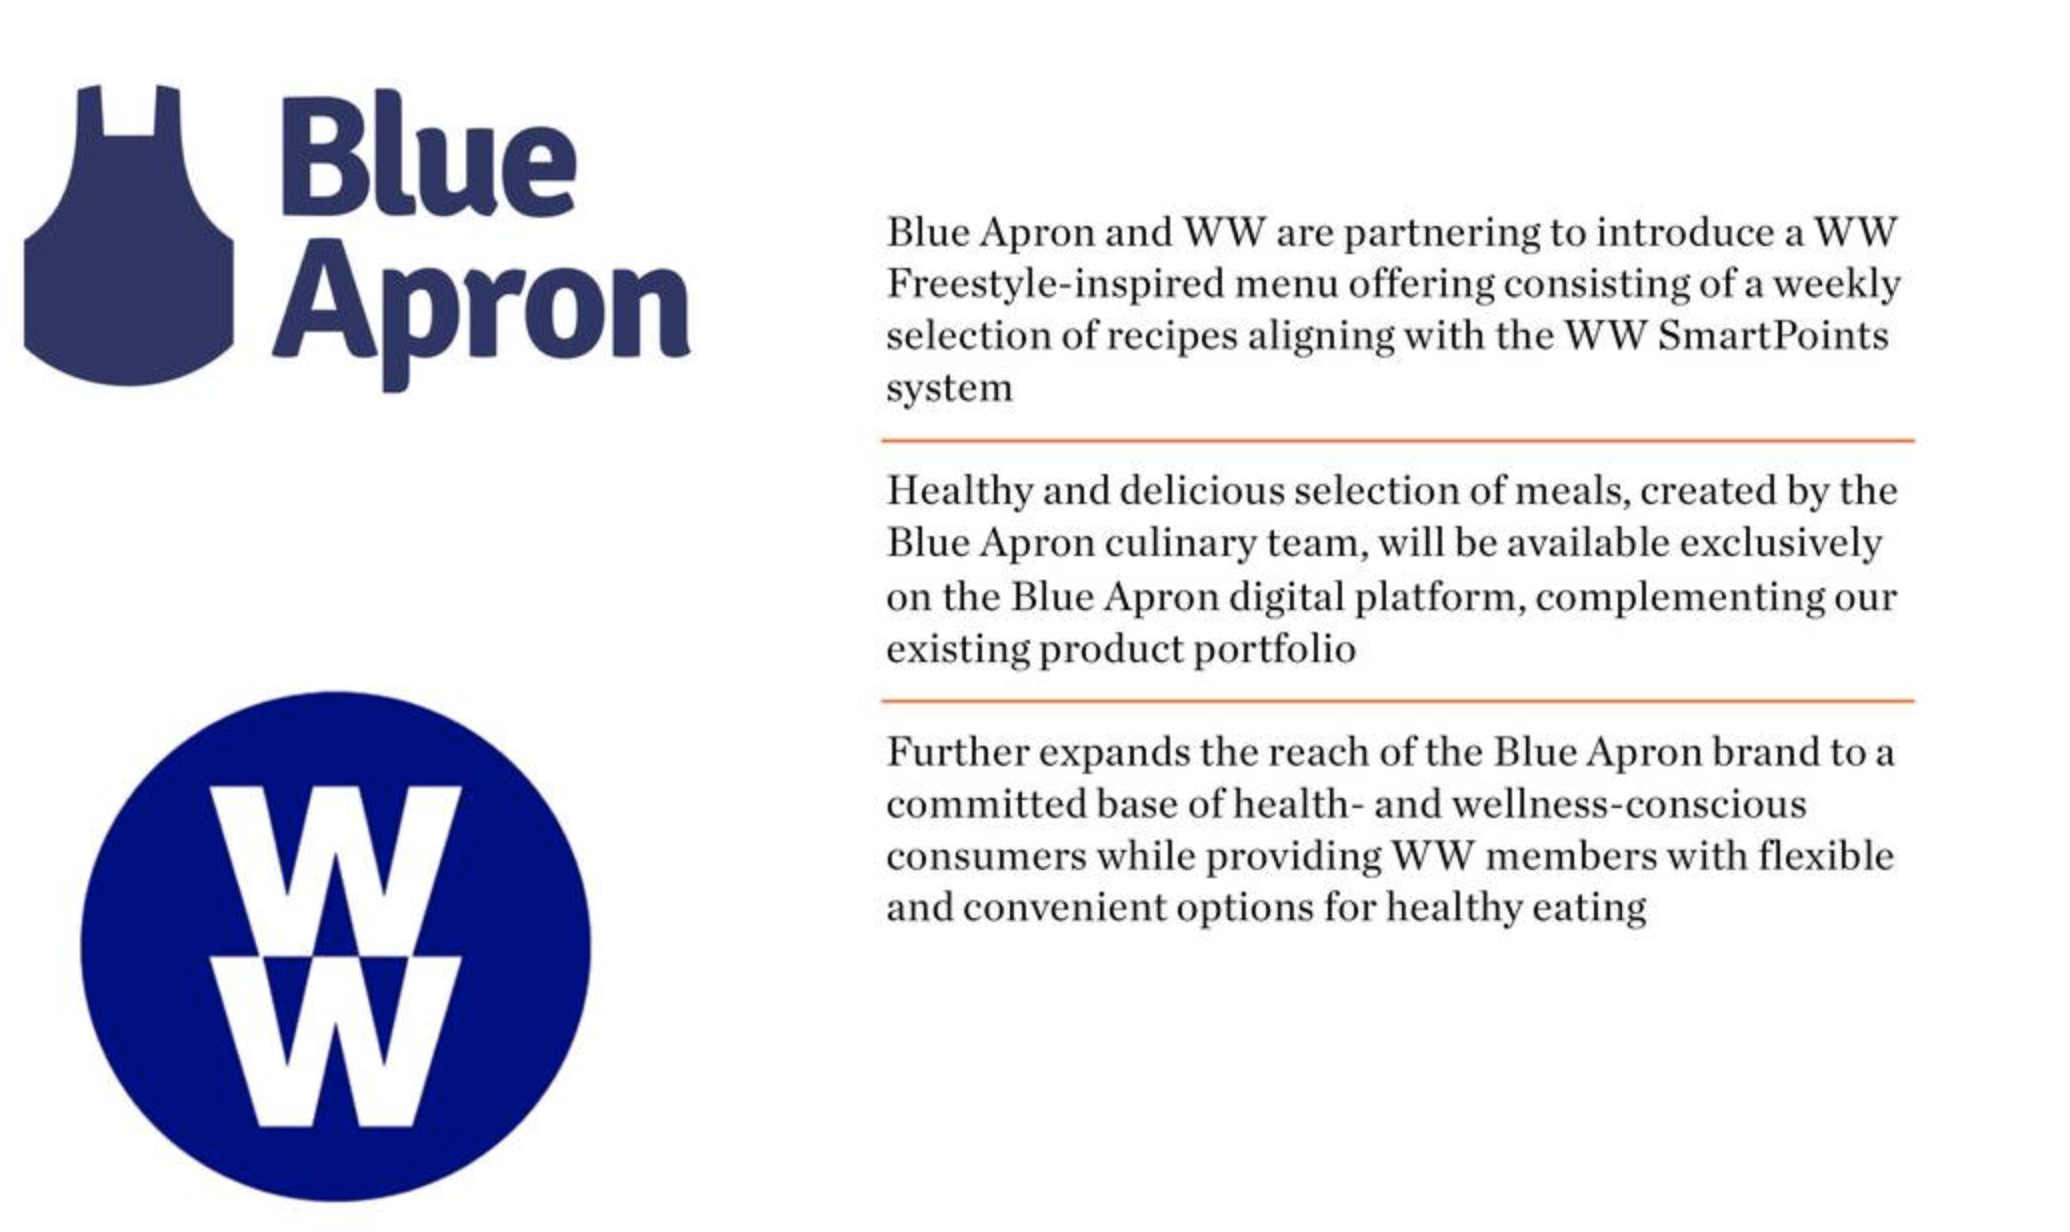 Blue Apron: The Fall Below $1 Is Inevitable - Blue Apron